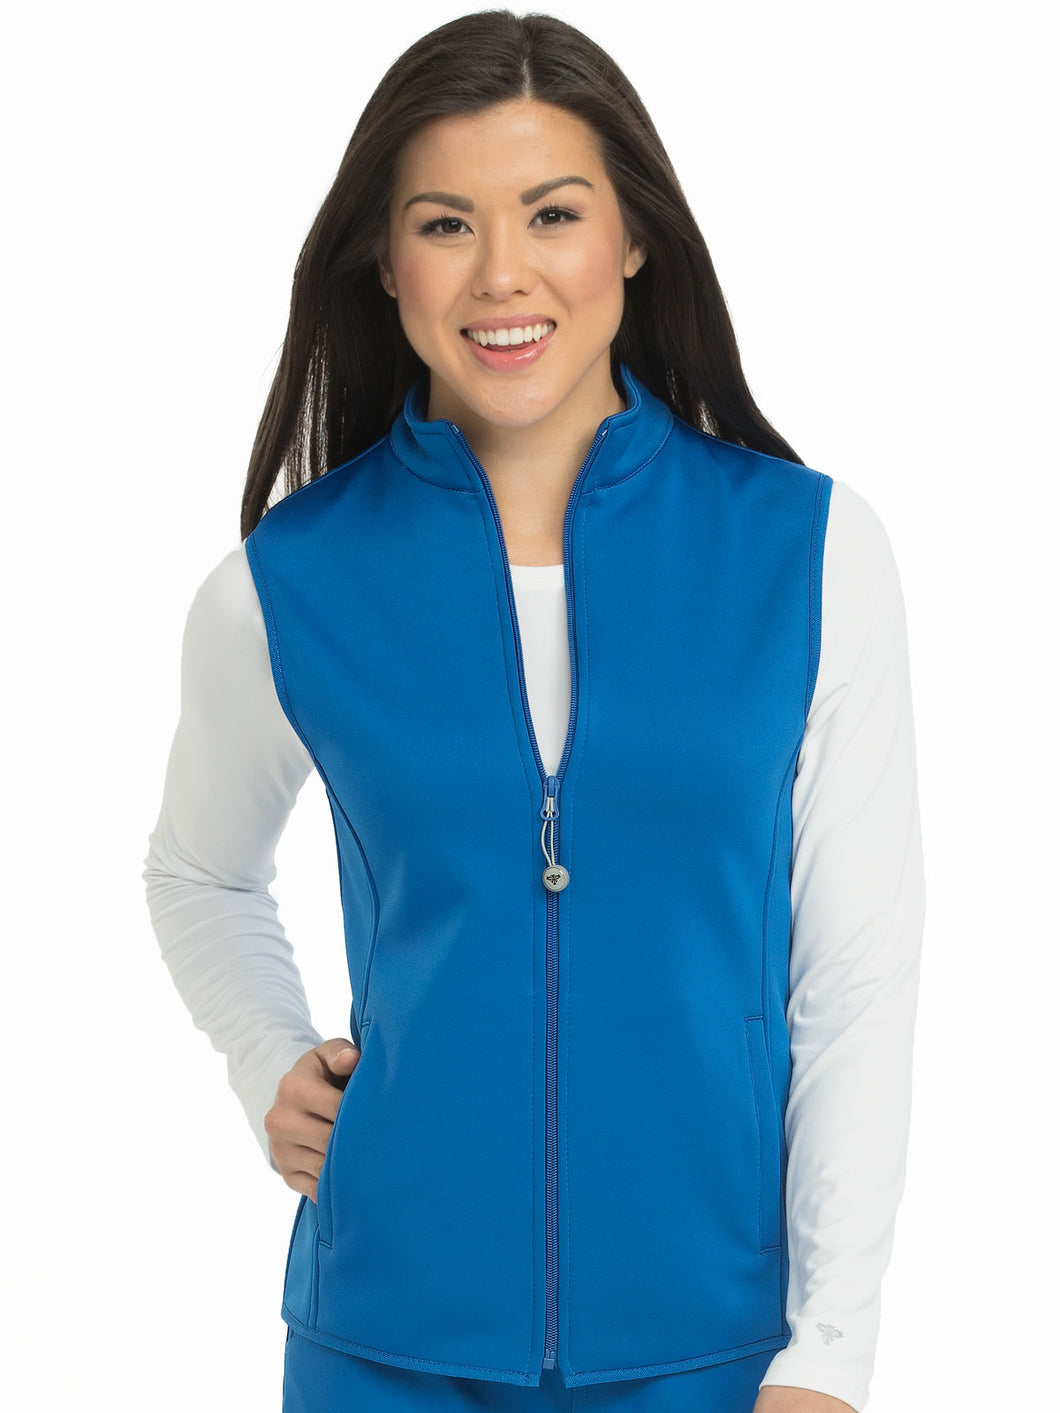 8690 BONDED FLEECE MED TECH VEST